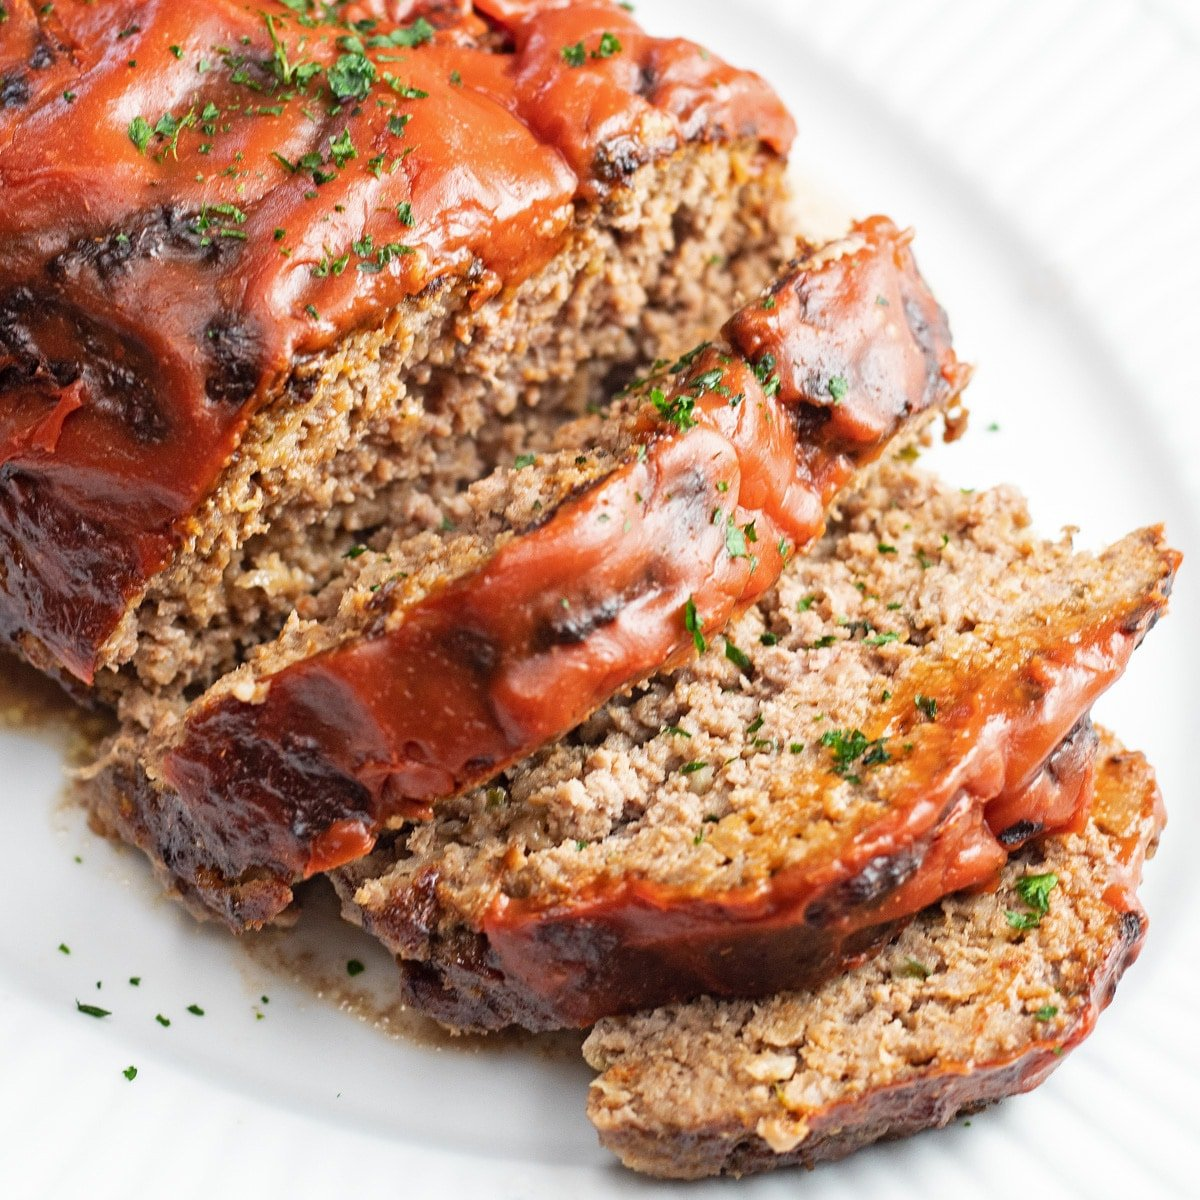 Sliced meatloaf ready for all your what to serve with meatloaf ideas.